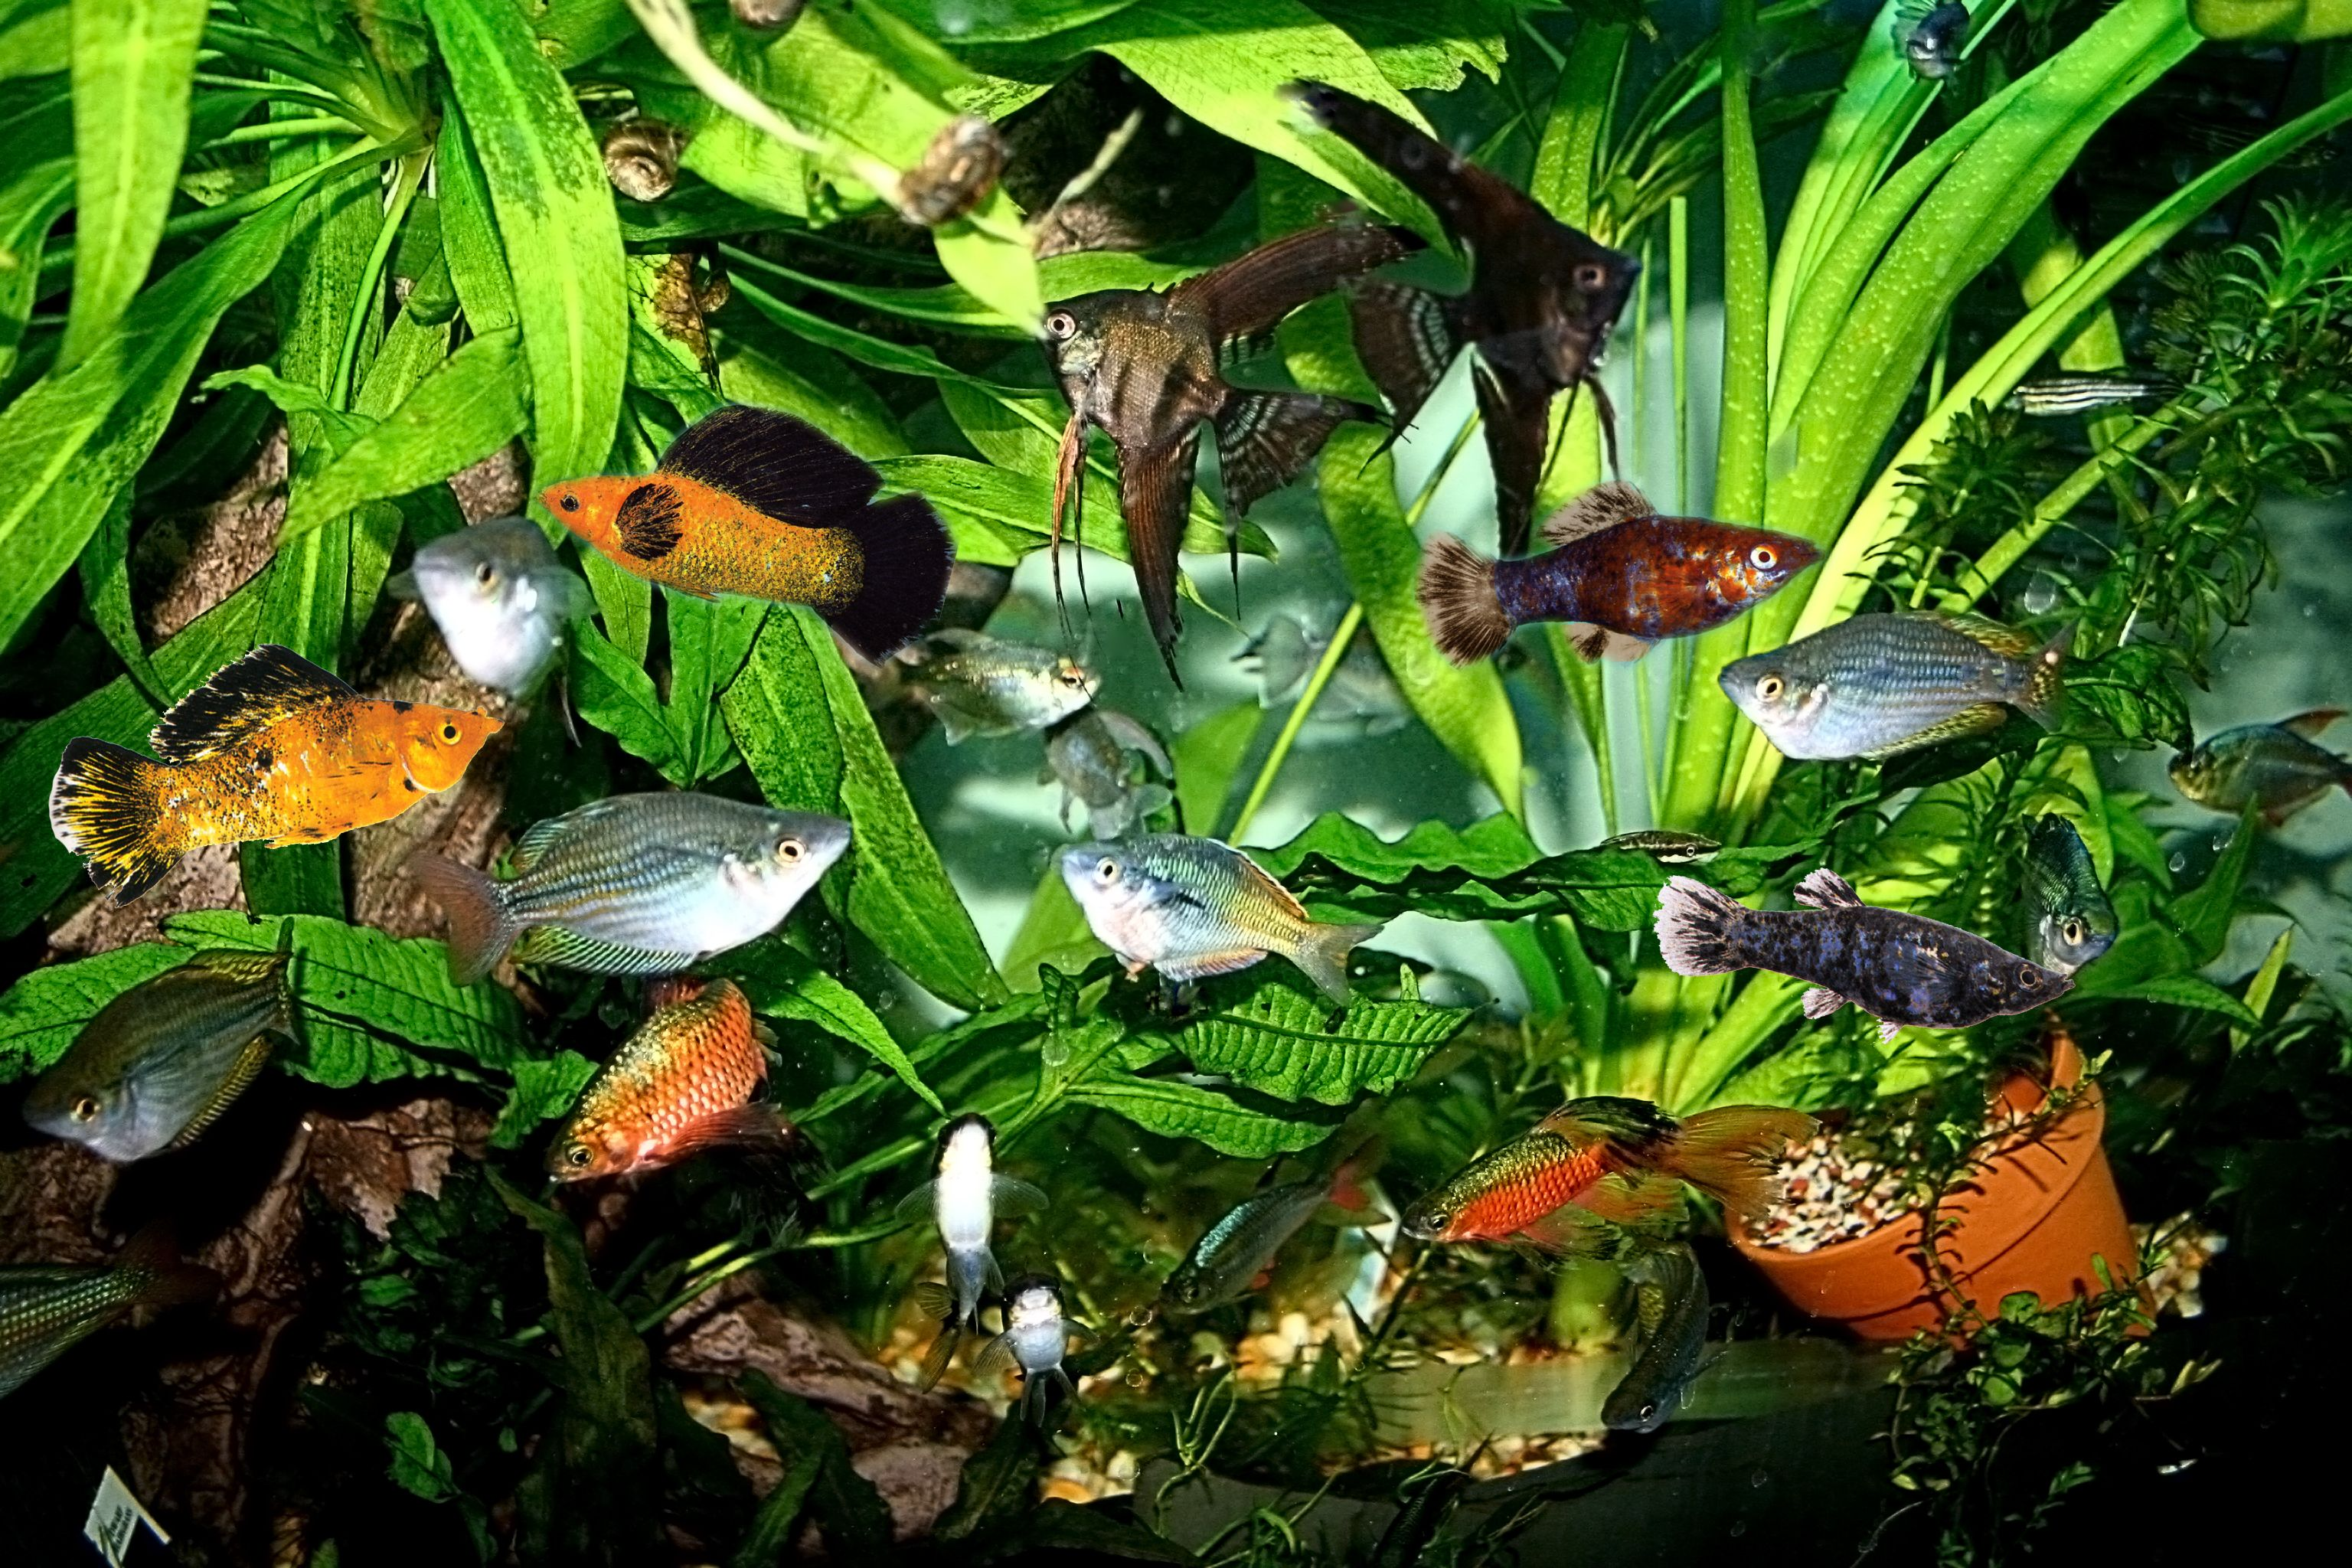 Fish Aquarium - Tropical fish aquarium fish ichthyologist thomas r reich phd presents tropical fish fun